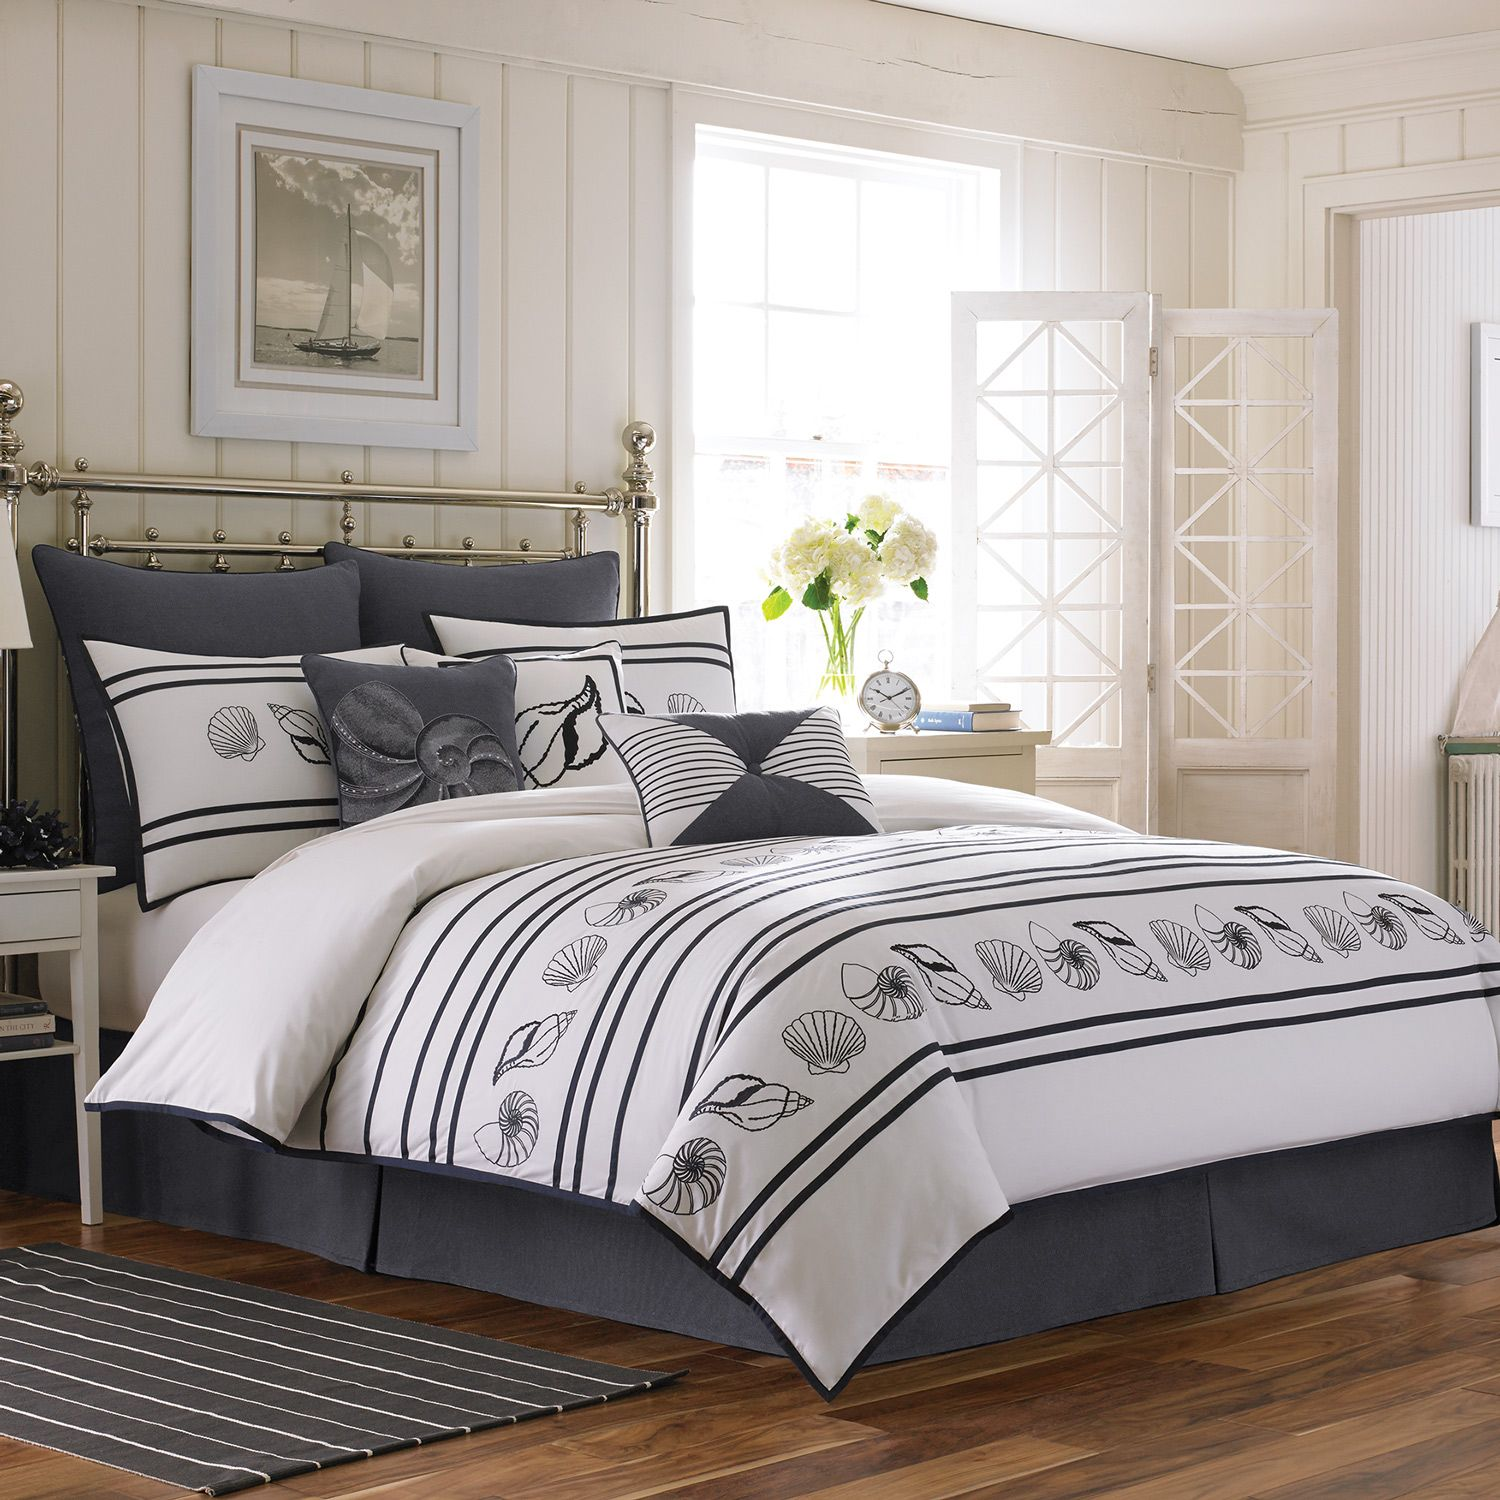 Exquisite California King Bedding For Bedroom Design With California King Bed Frame